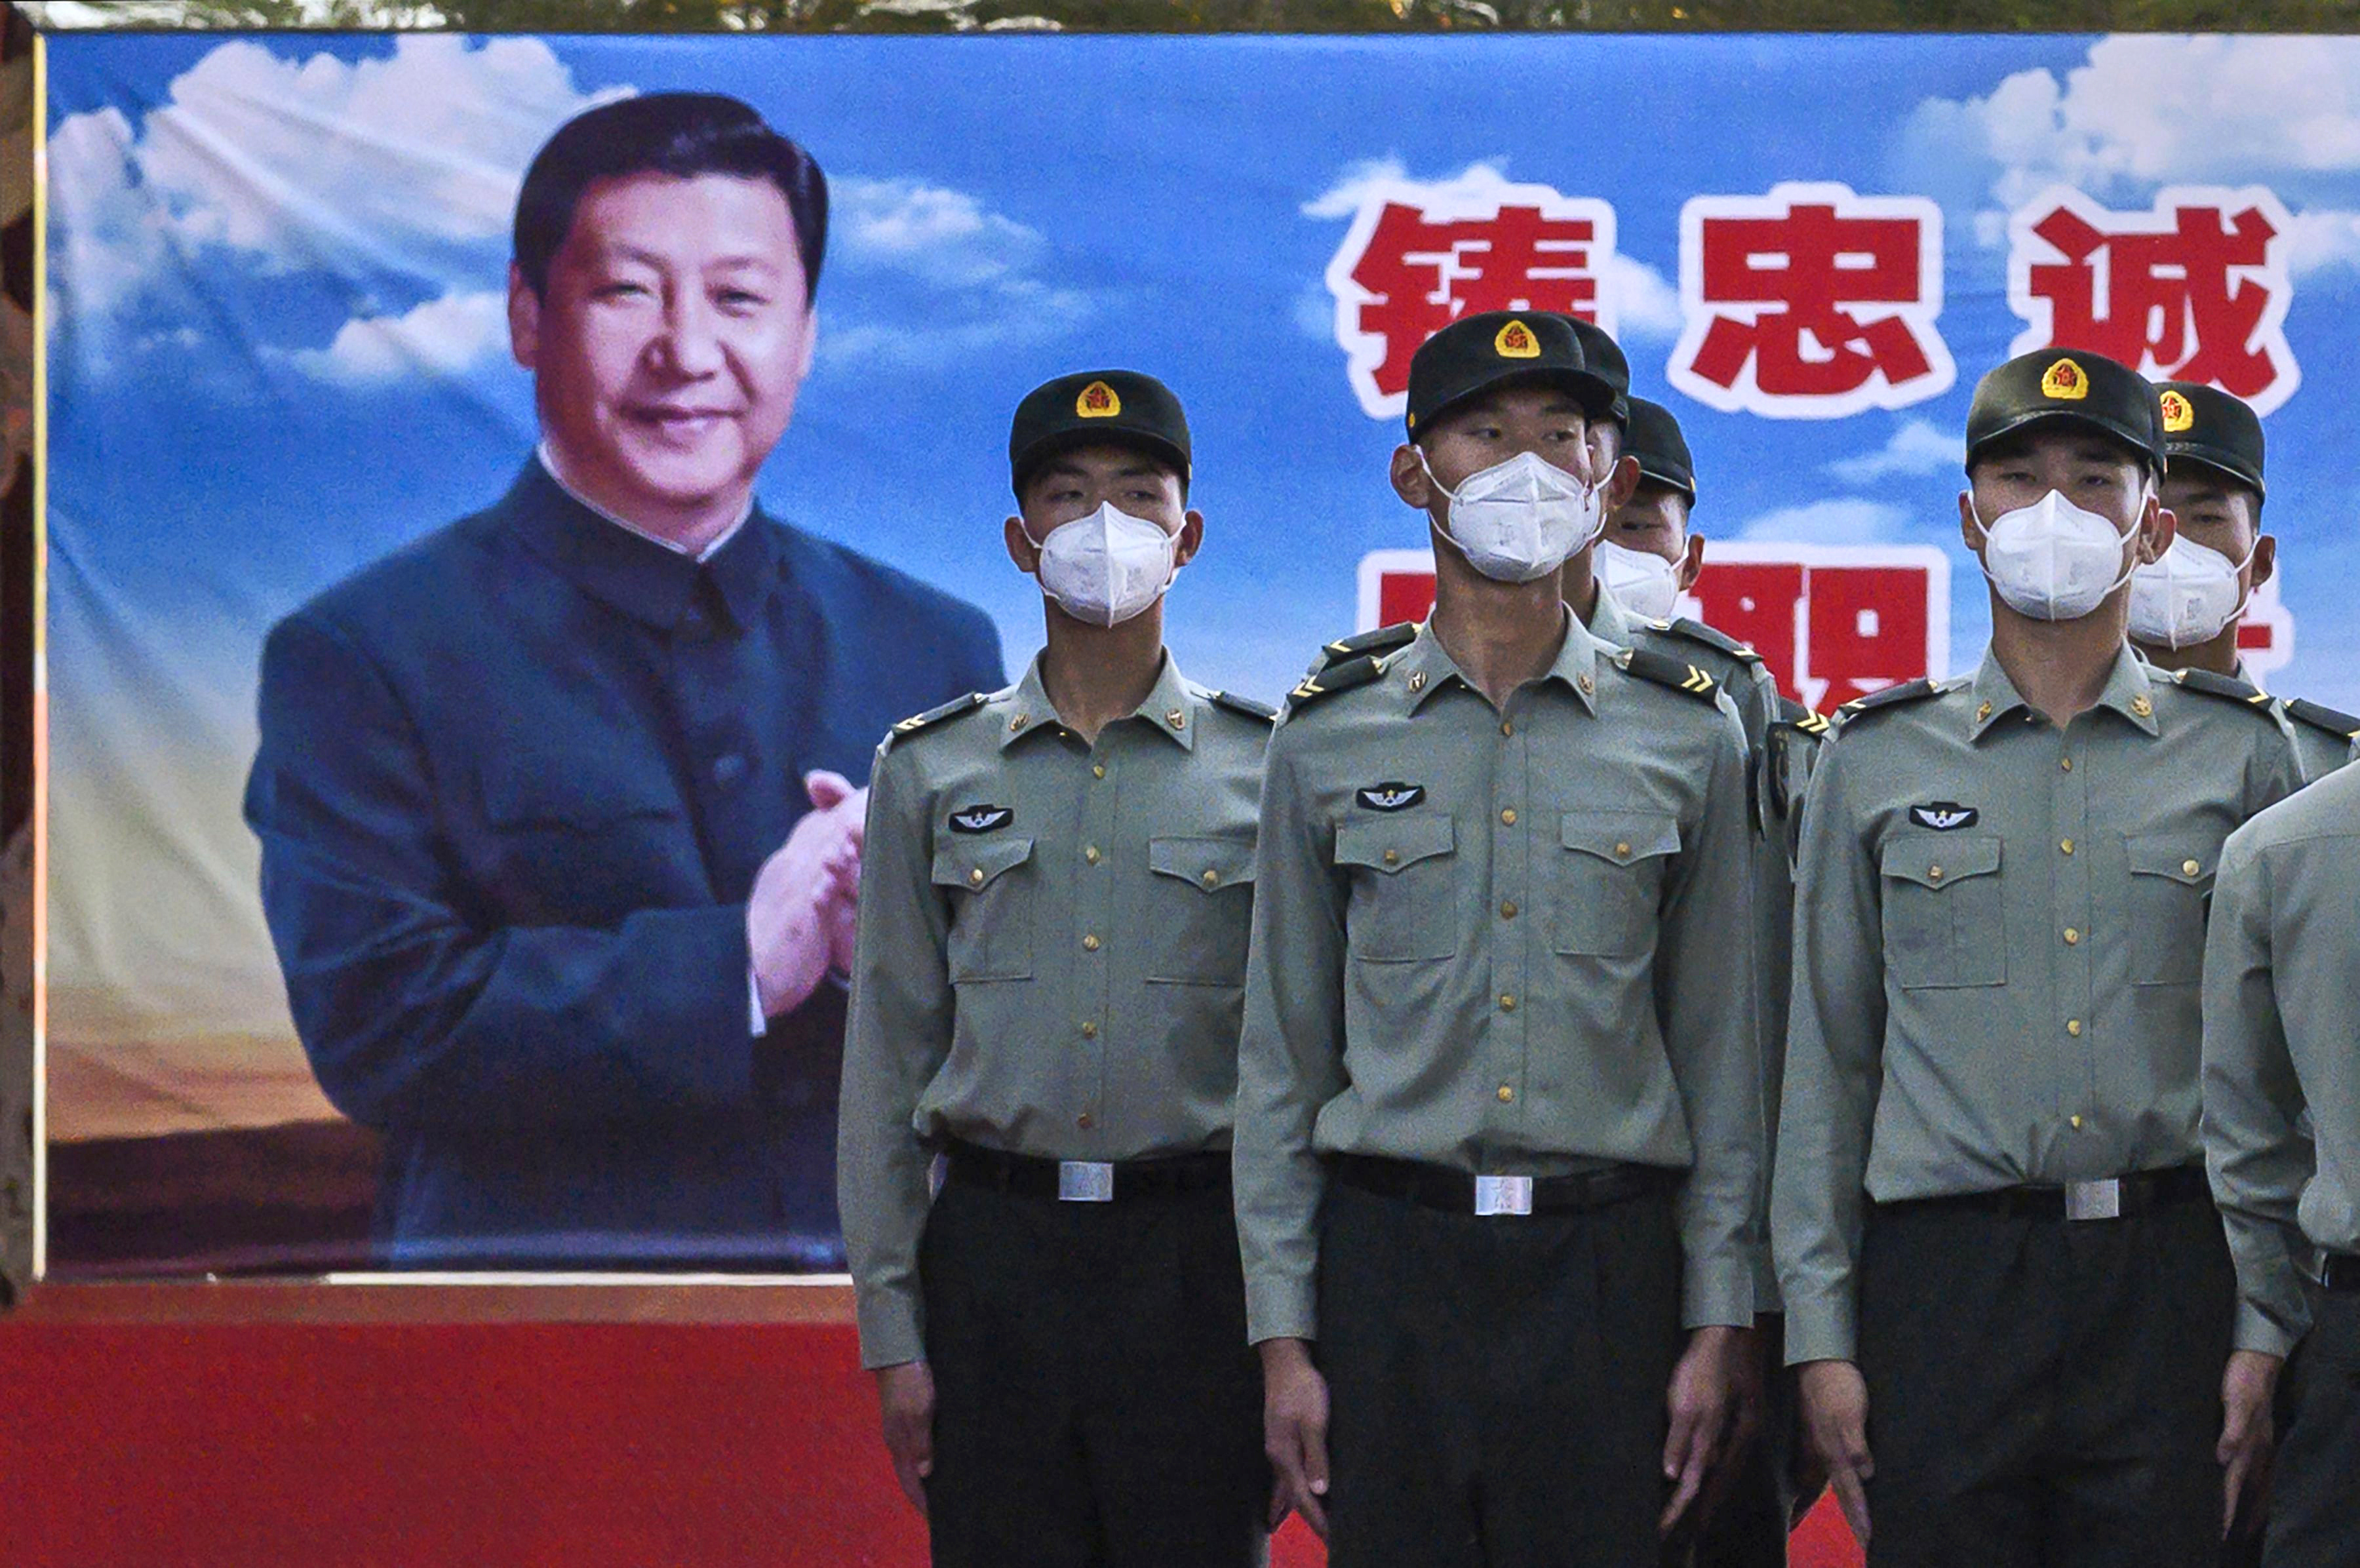 China likely to attack Taiwan within five years, panel told